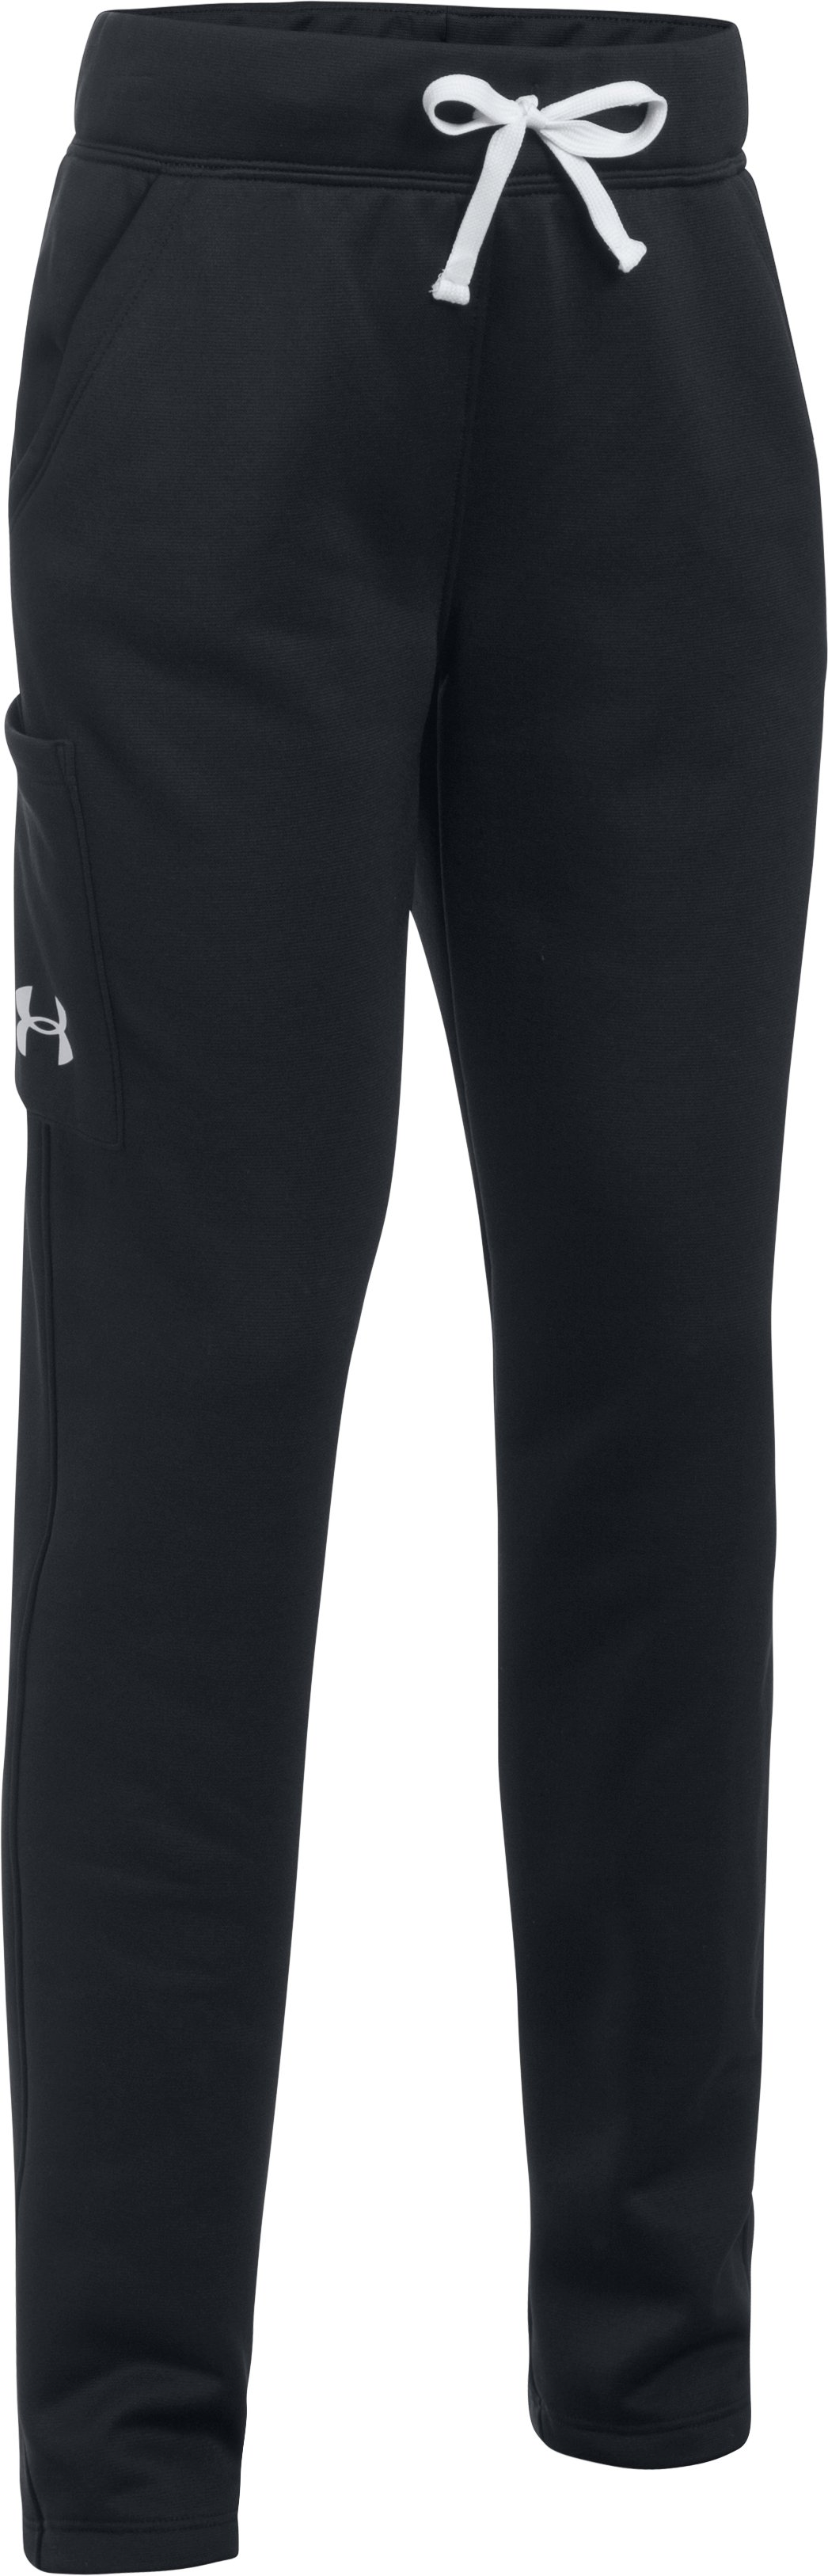 Girls' Armour Fleece® Pants, Black